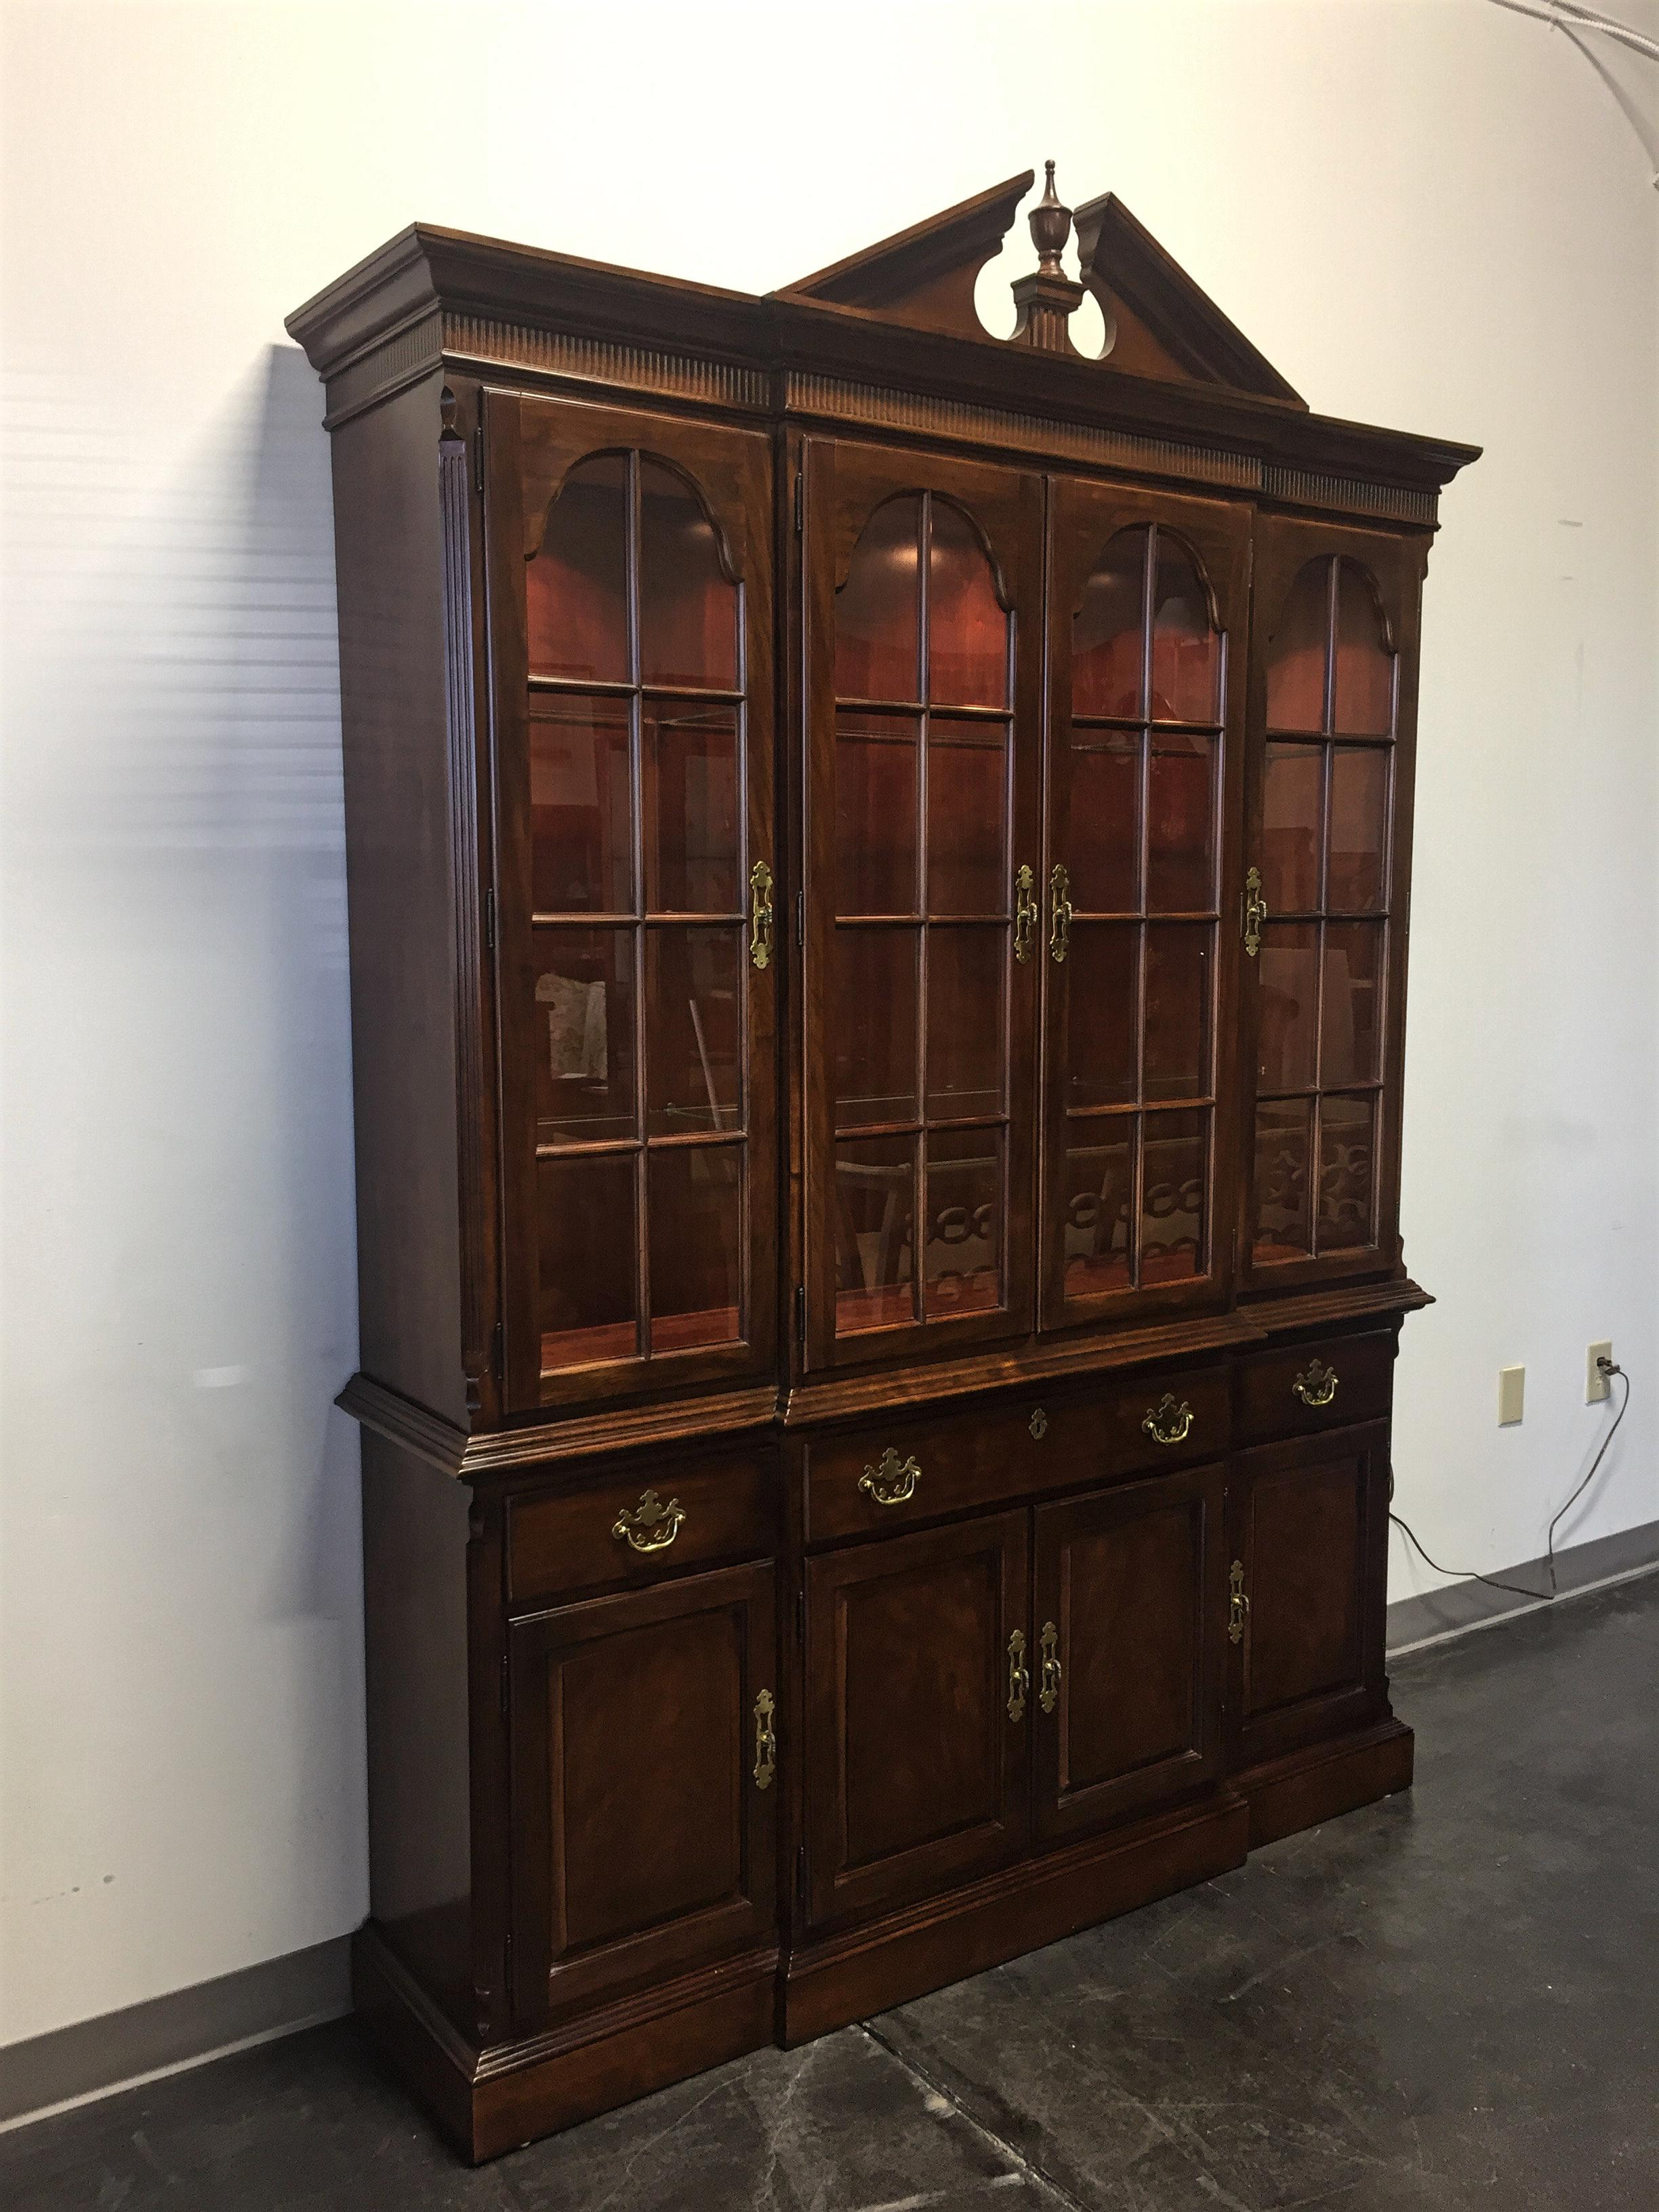 Charmant Traditional Style Breakfront China Cabinet From Top Quality Furniture Maker Drexel  Heritage. Made In